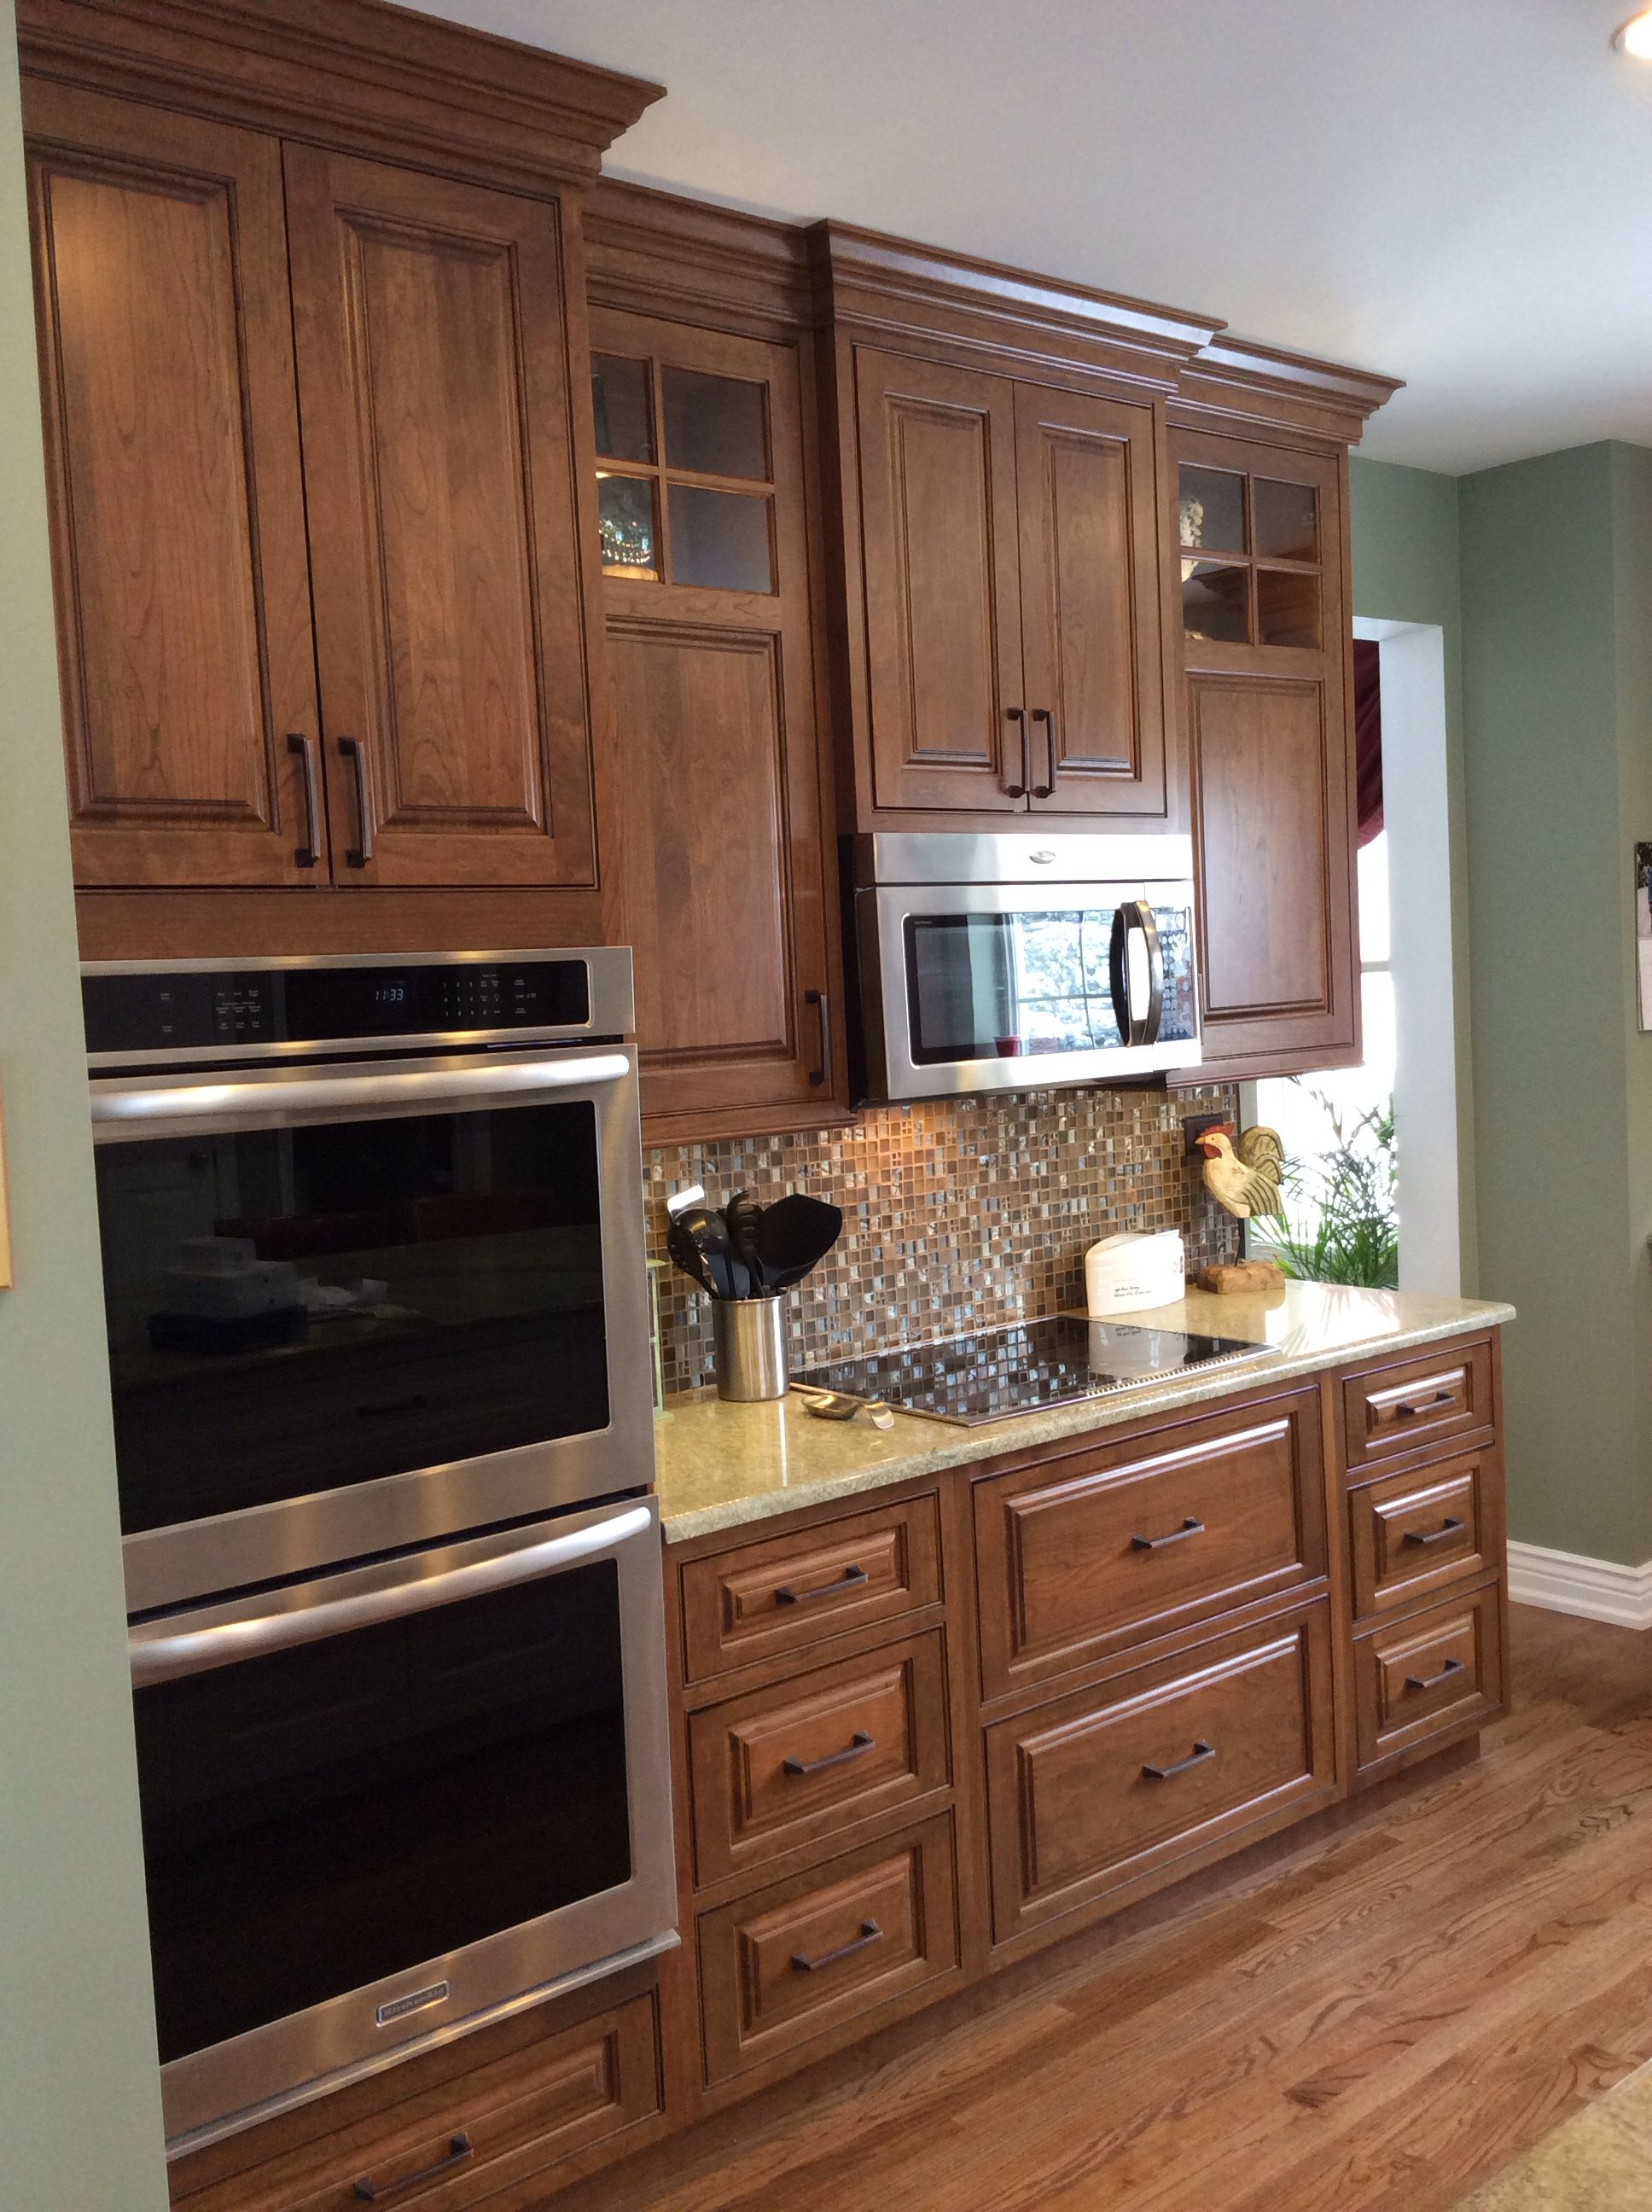 Beaded Kitchen Cabinets Shiloh Beaded Inset Cabinets Shiloh Cabinets Pinterest